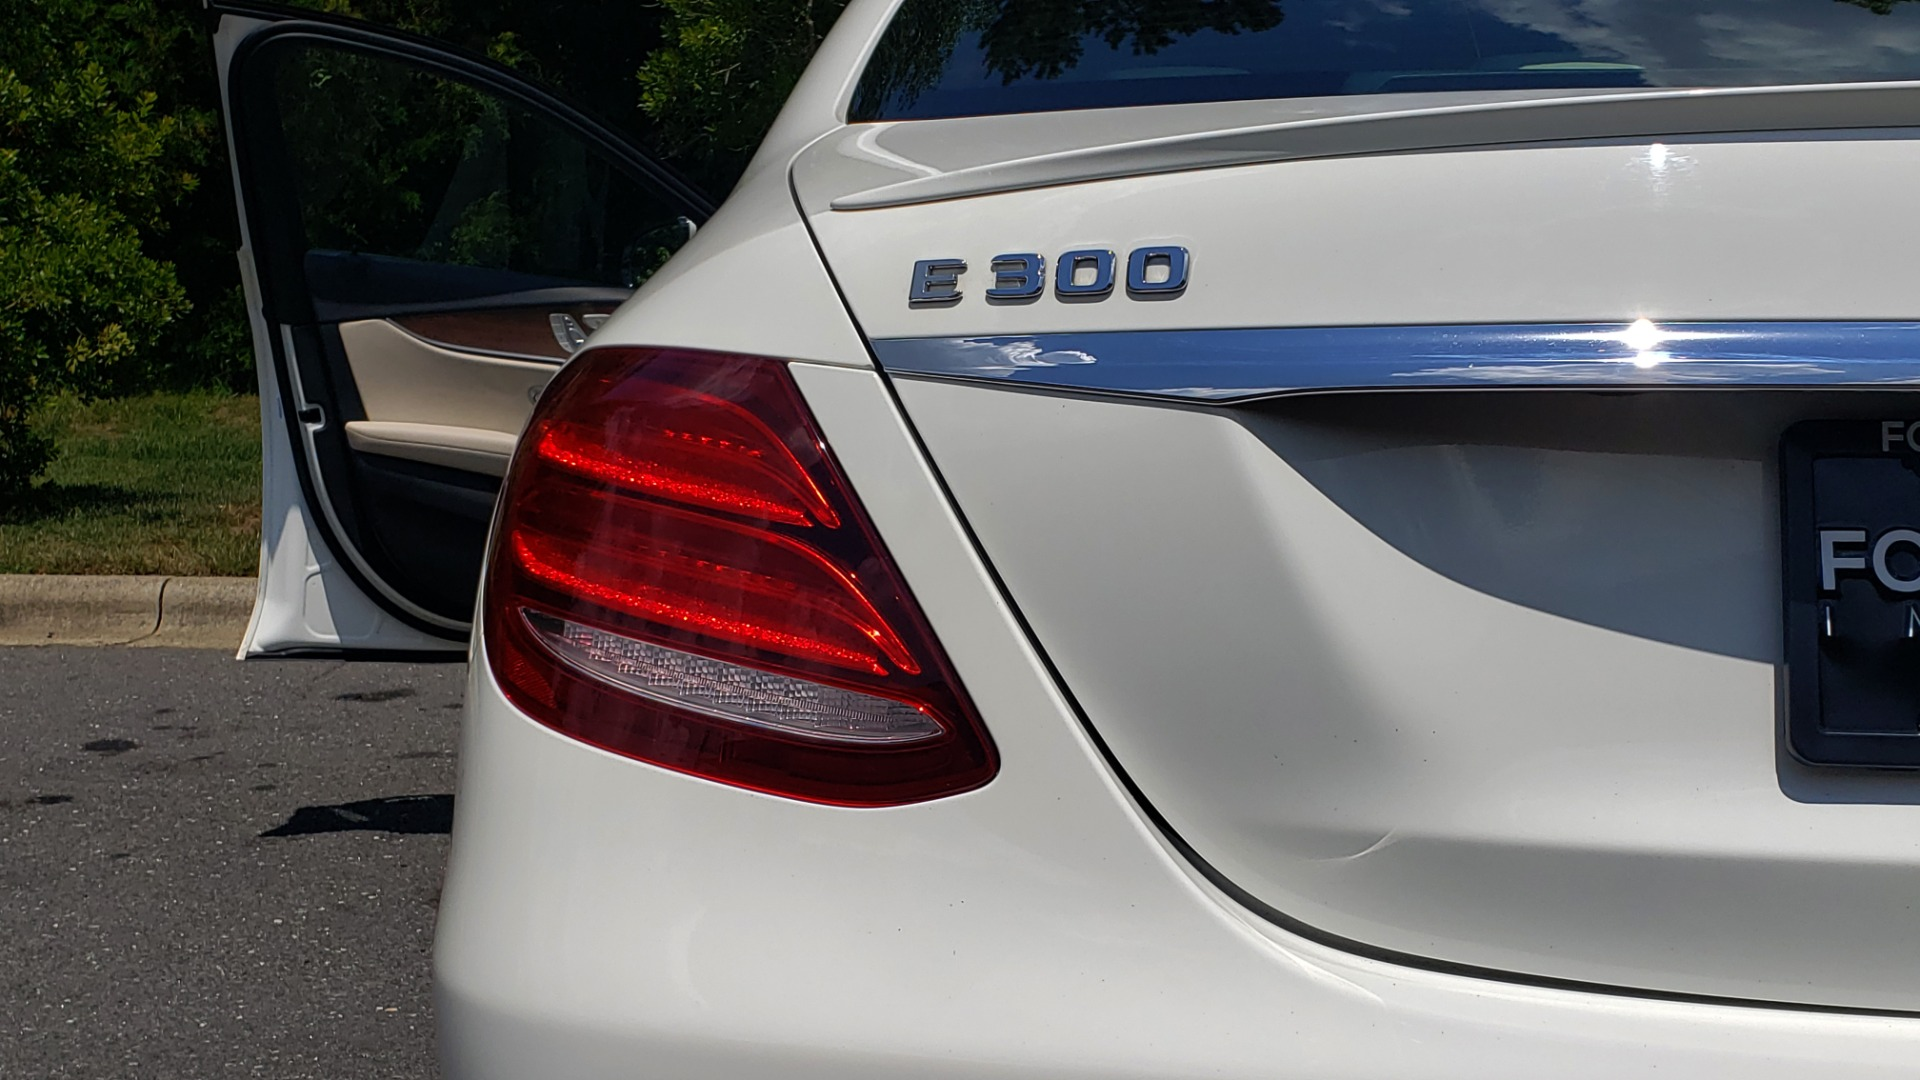 Used 2017 Mercedes-Benz E-CLASS E 300 PREMIUM / SPORT / NAV / SUNROOF / HTD STS / BSM / REARVIEW for sale $27,995 at Formula Imports in Charlotte NC 28227 25